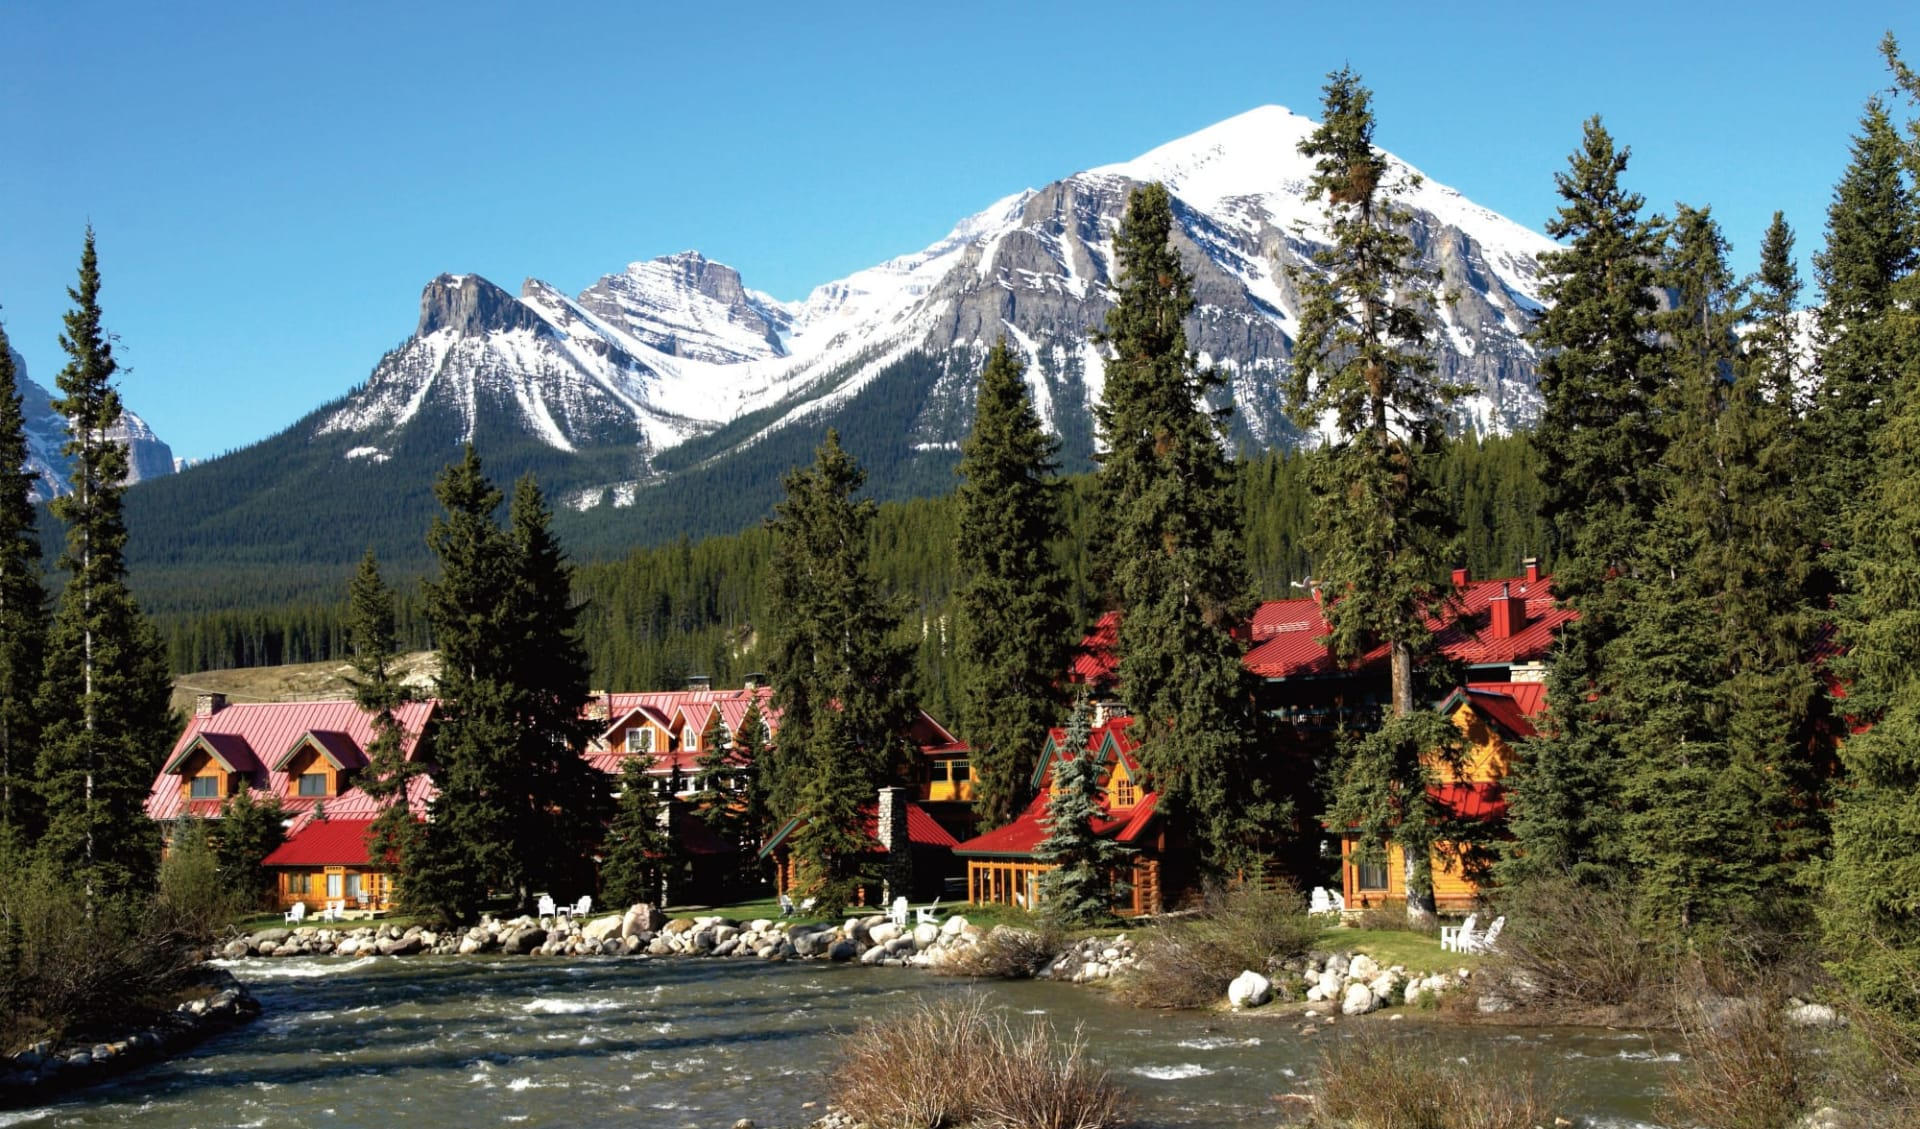 Post Hotel & Spa in Lake Louise:  Post Hotel & Spa_ExteriorWithPipestoneRiver